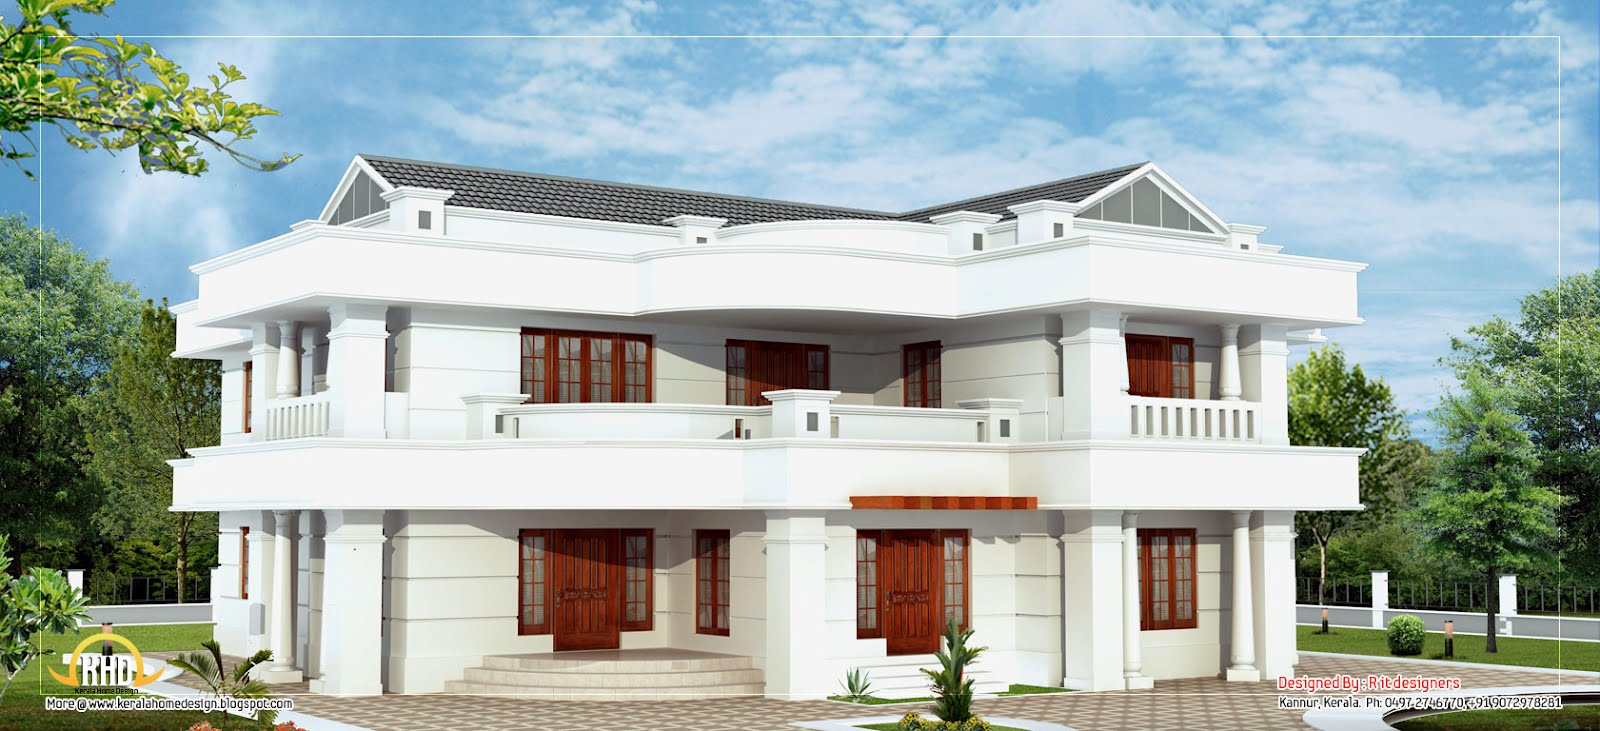 Beautiful 2 story house elevation 3665 sq ft indian 2 floor house